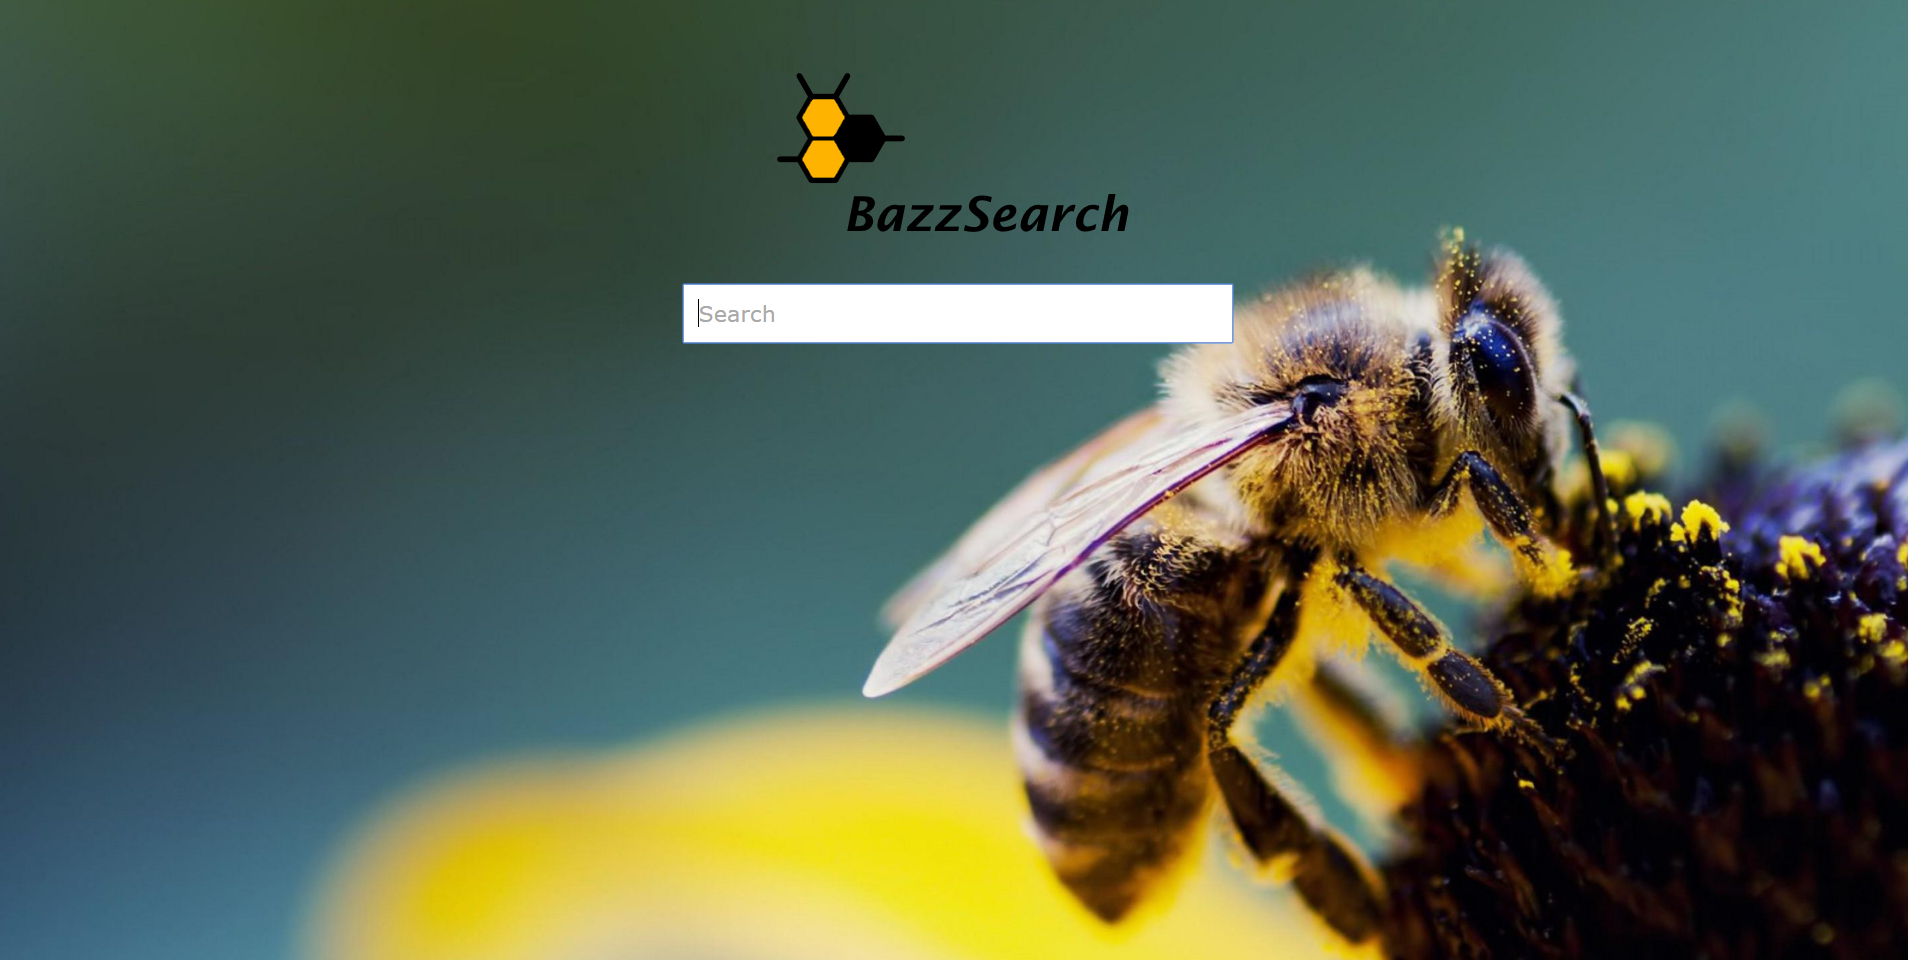 Bazz Search Ads